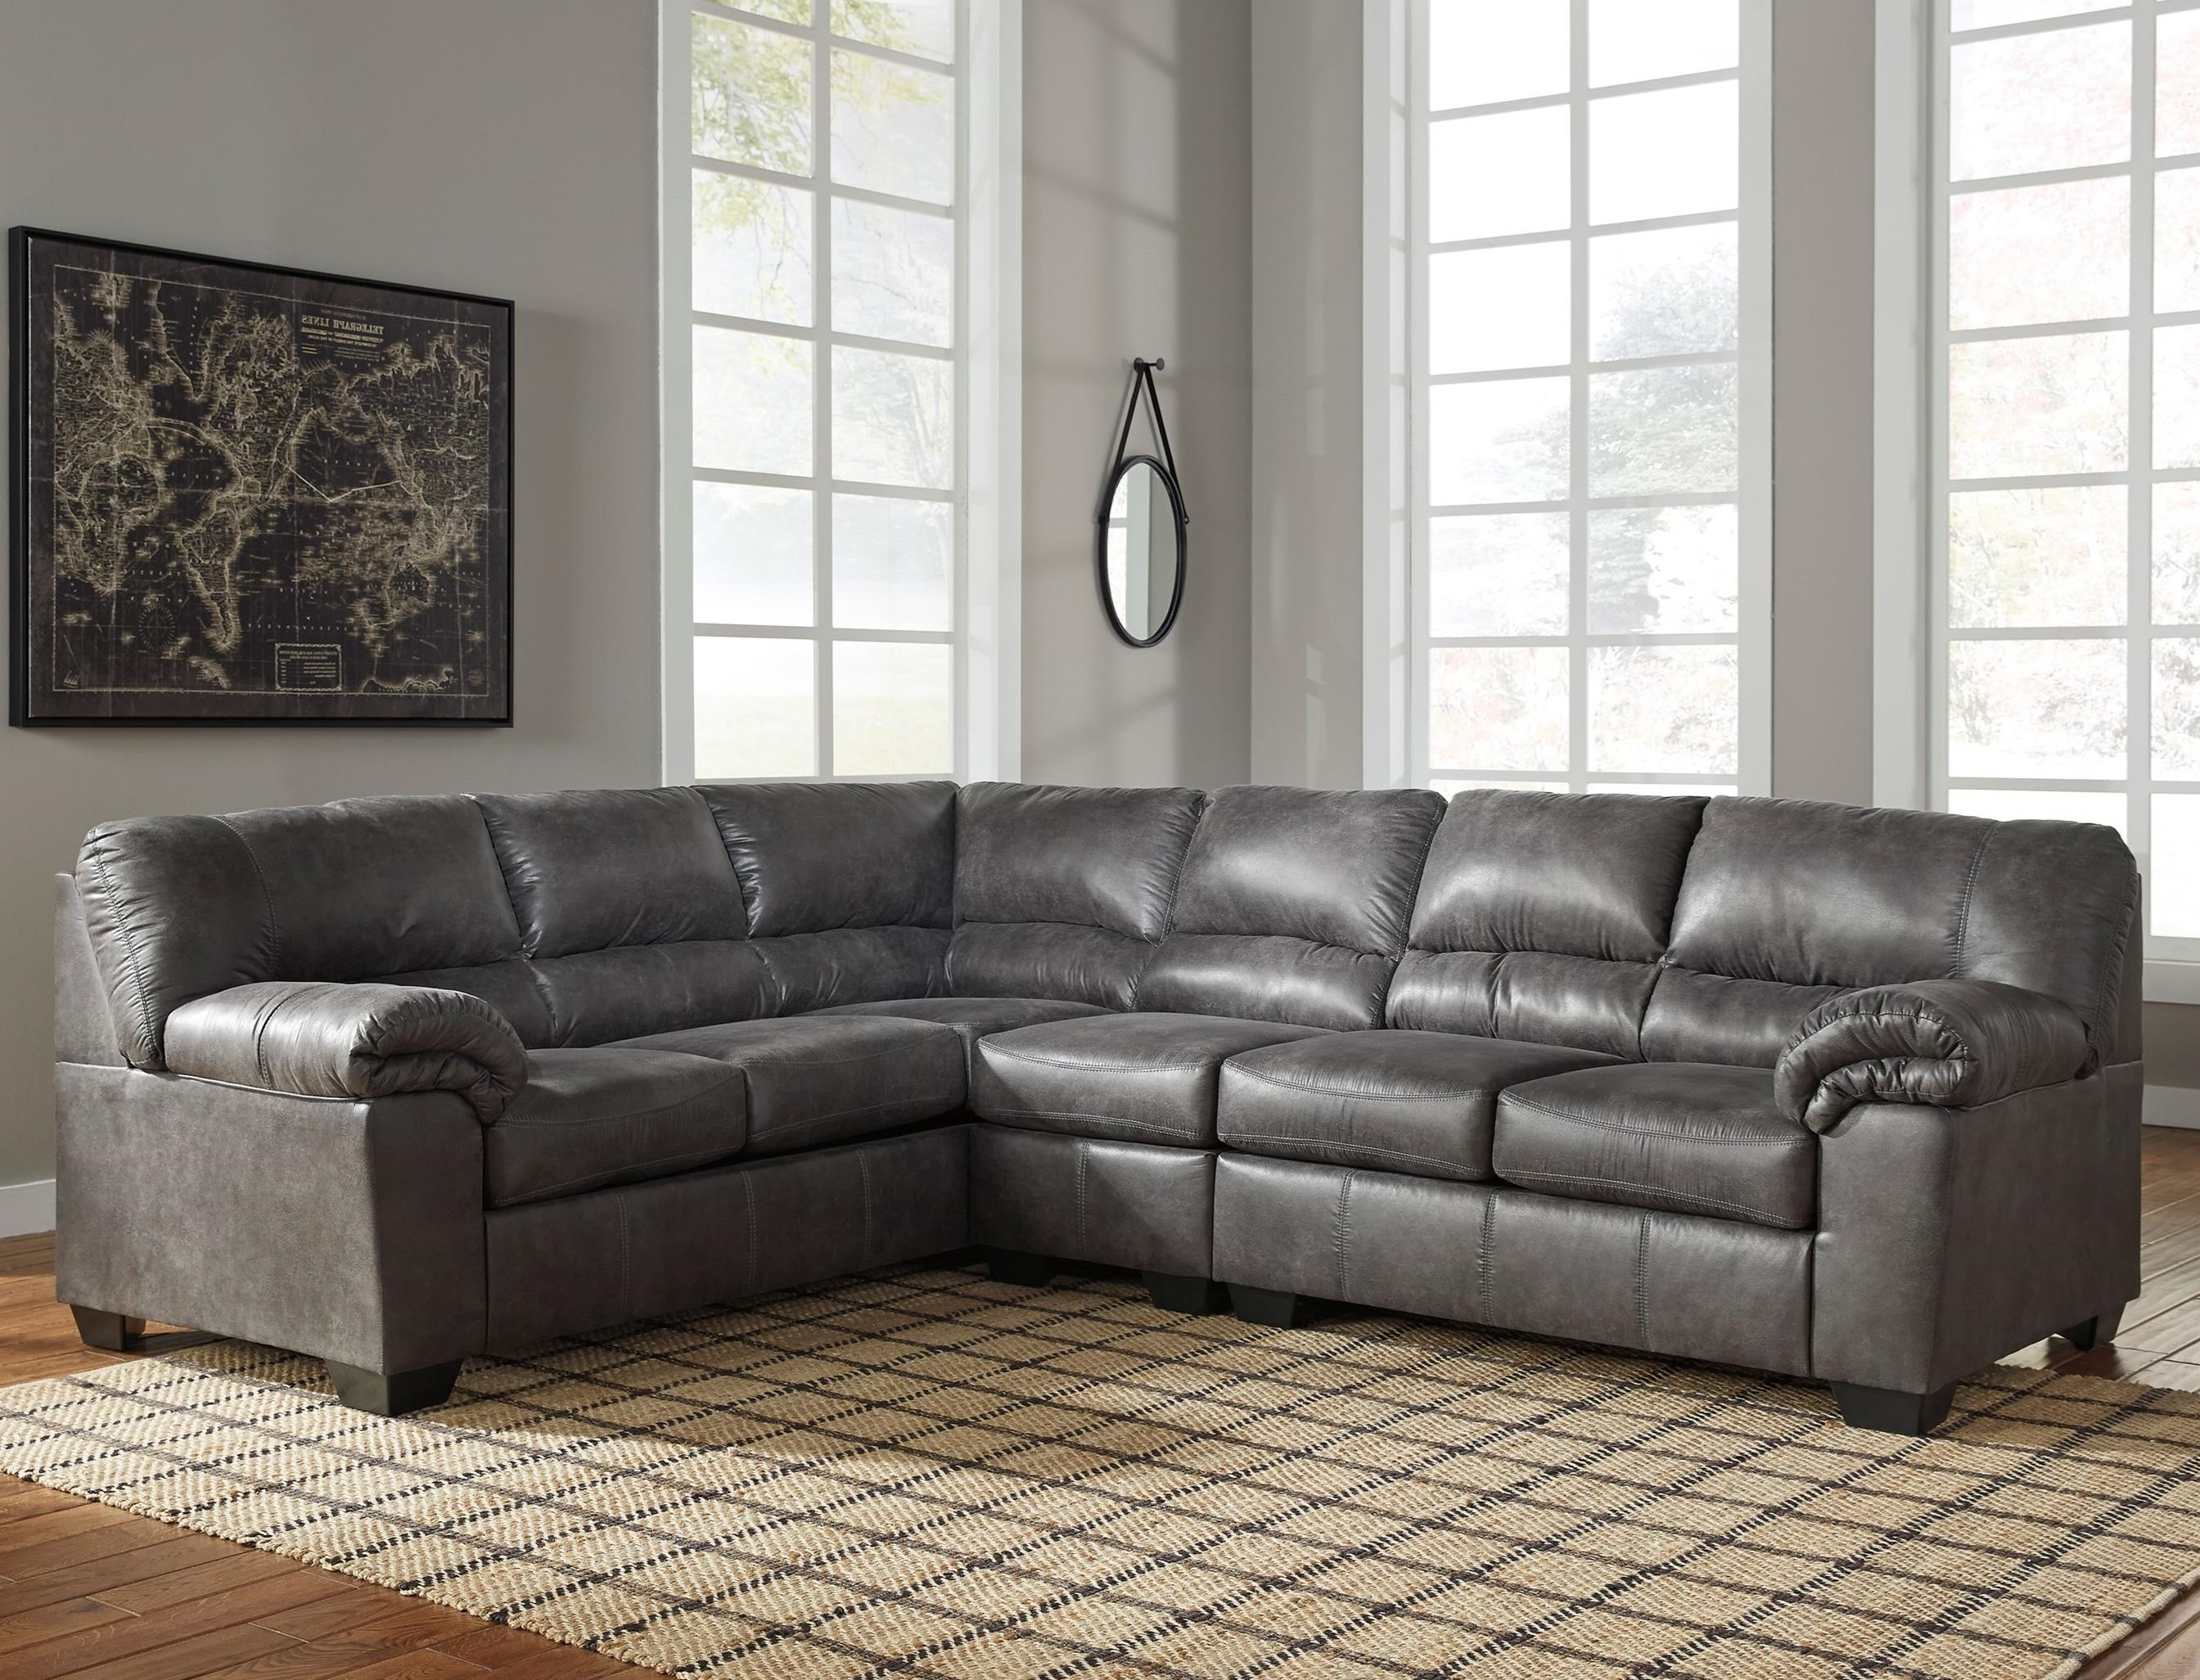 Signature Design By Ashley Bladen 3 Piece Faux Leather Sectional Royal Furniture Sectional Sofas